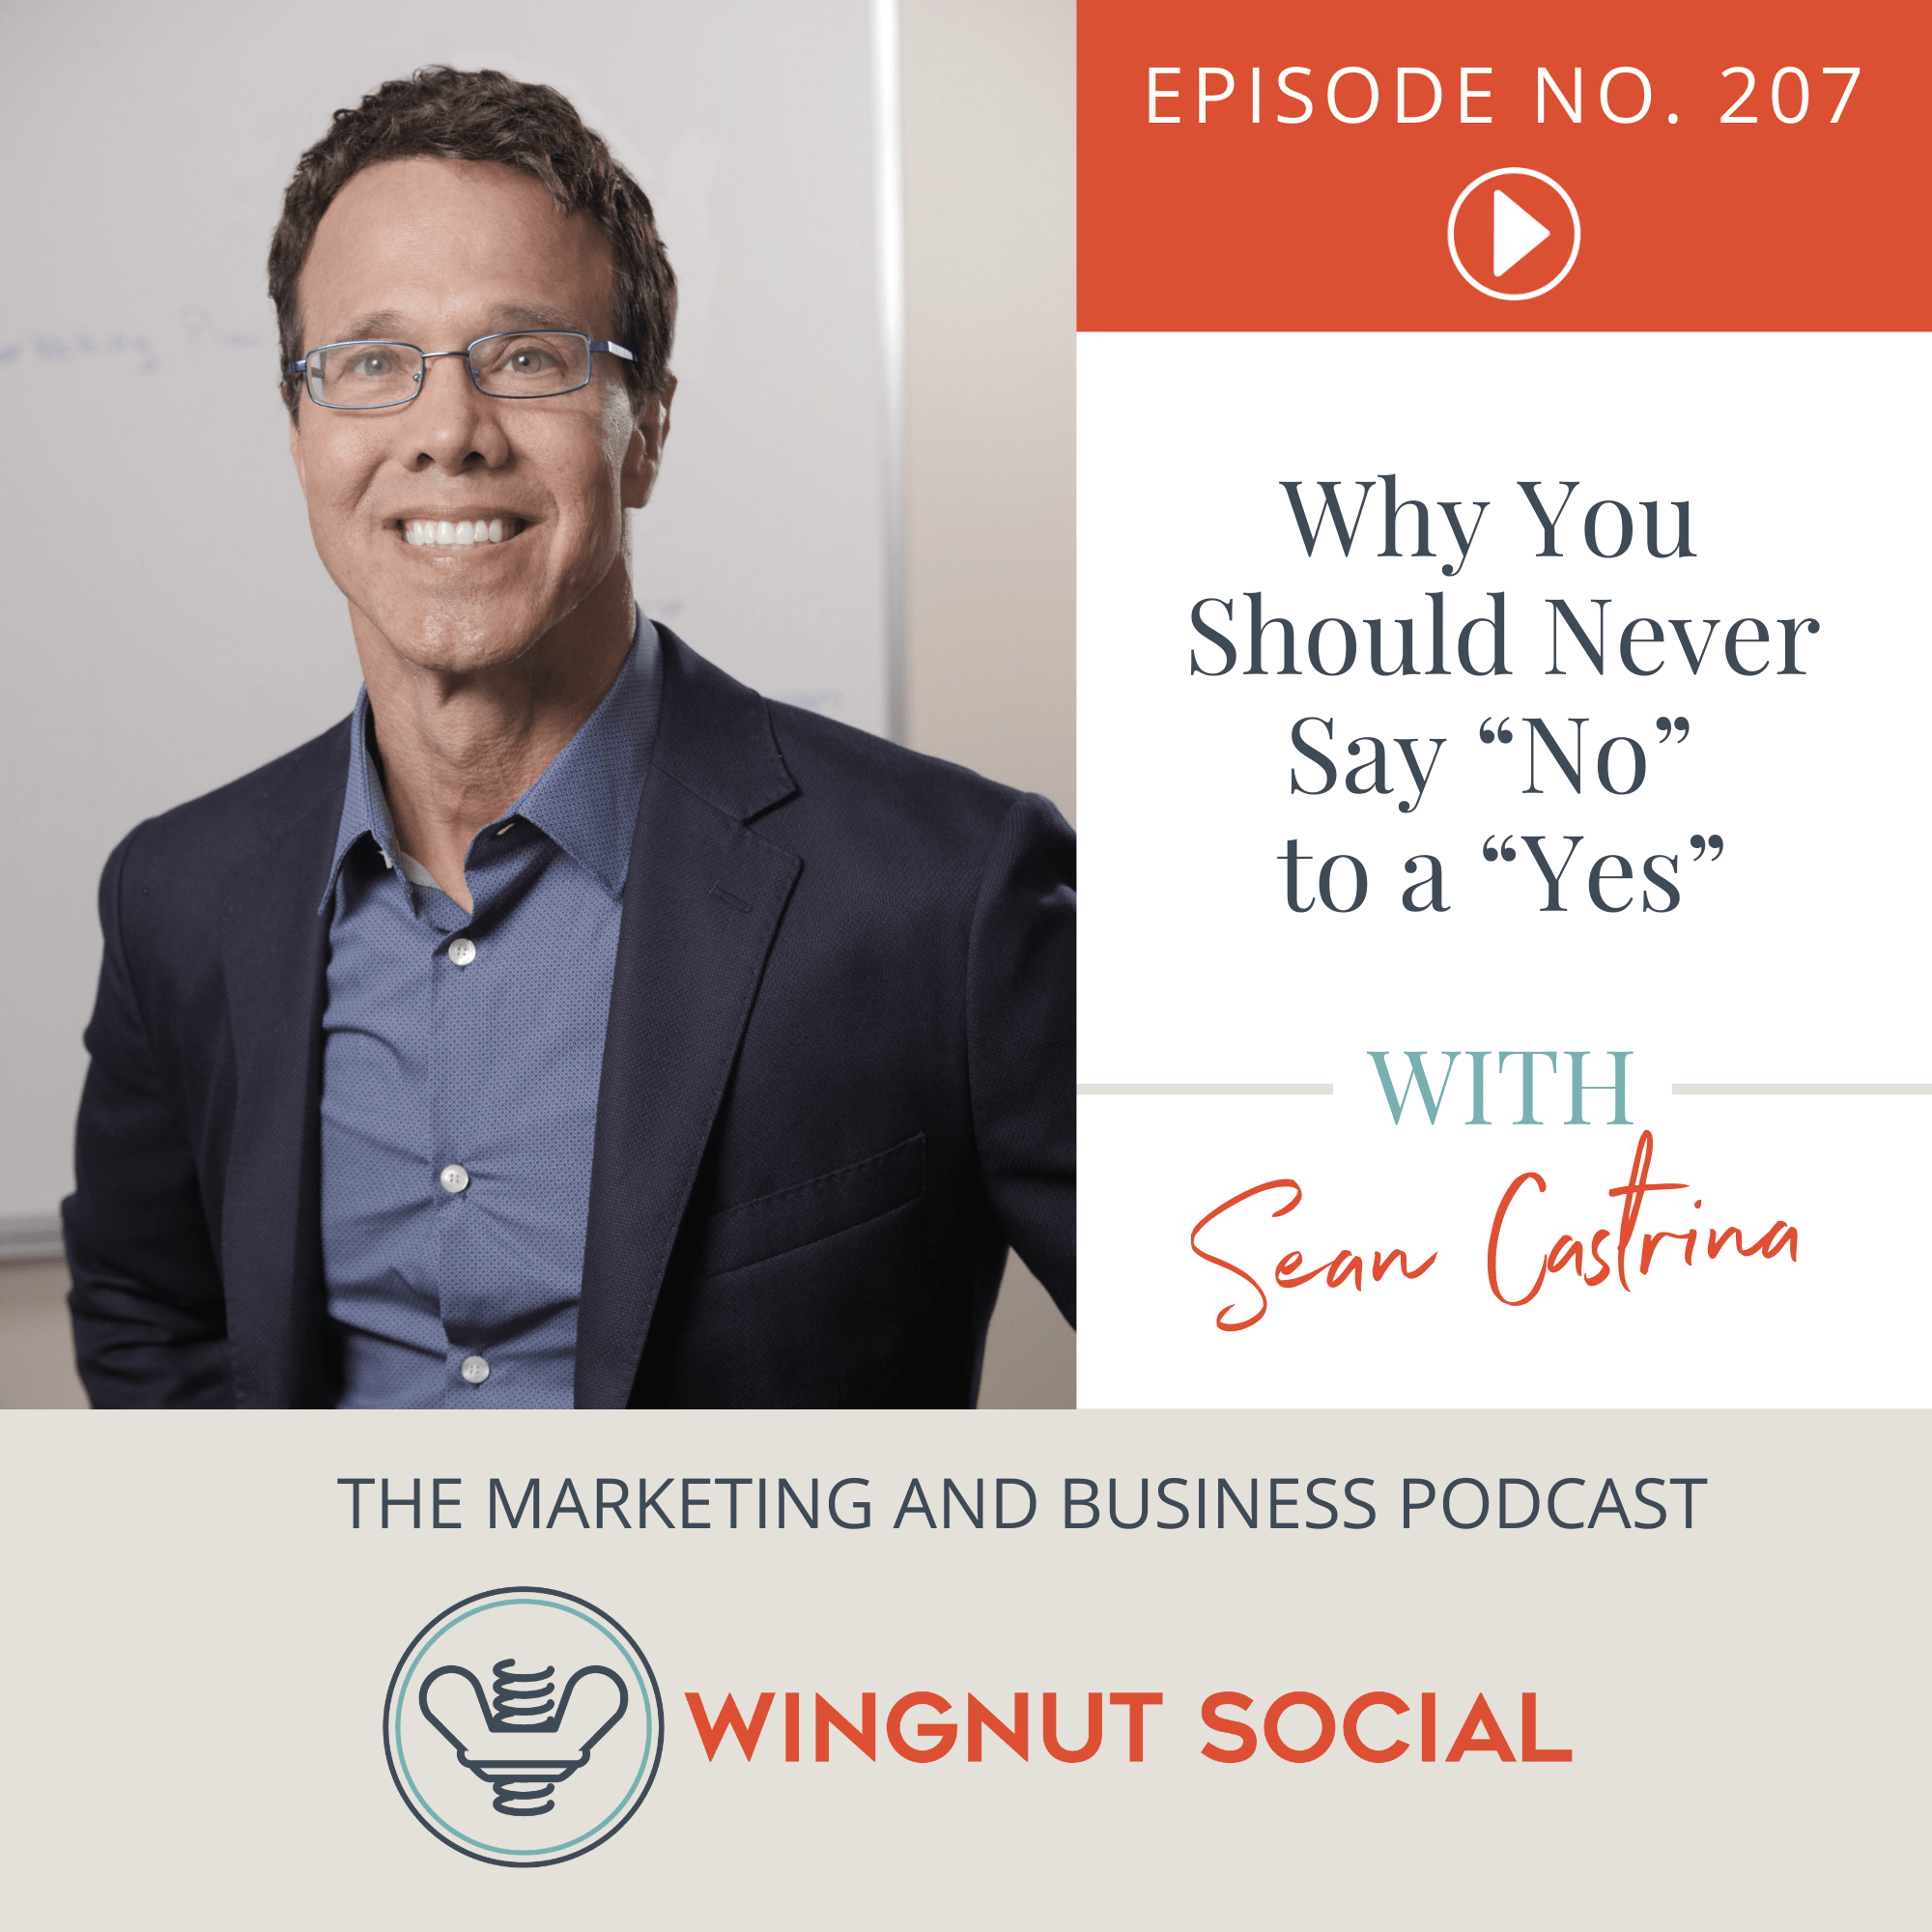 """Sean Castrina Shares Why You Should Never Say """"No"""" to a """"Yes"""" - Episode 207"""